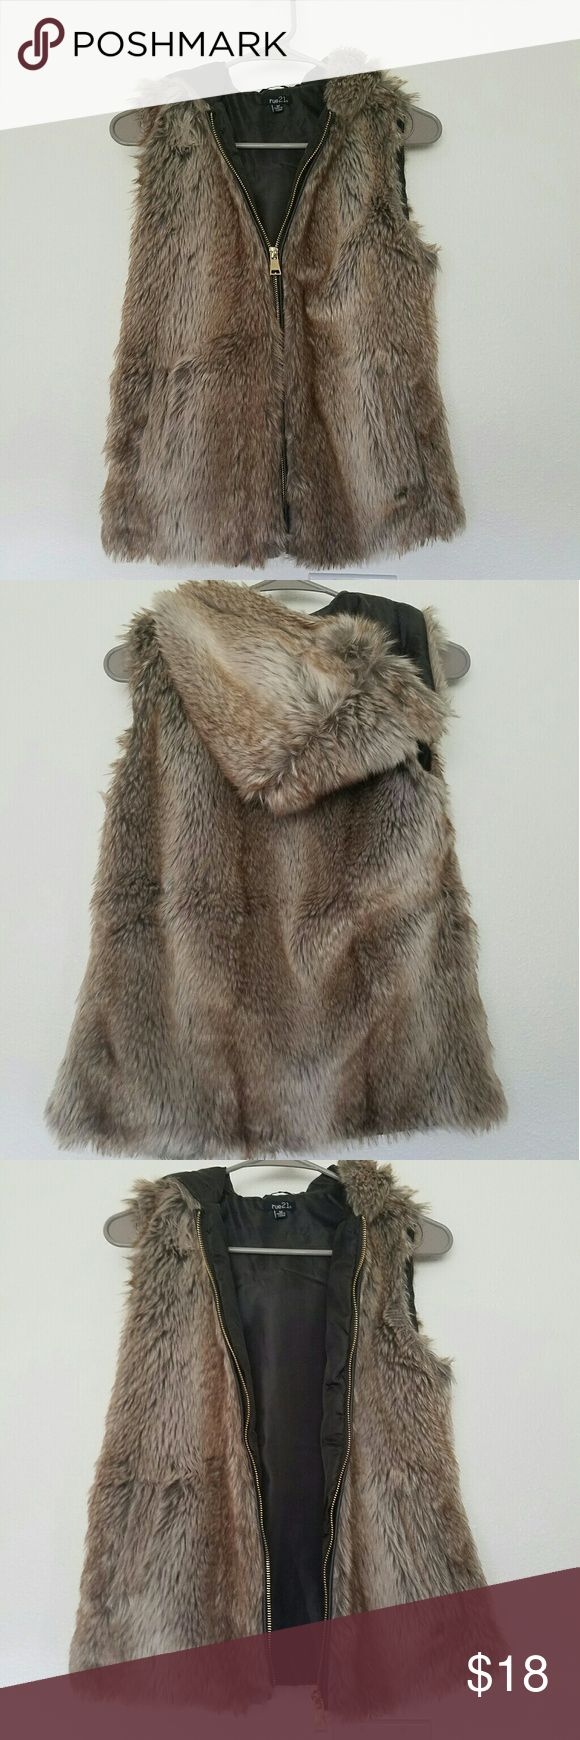 Rue 21 Fur Vest Brown fur vest with zipper. Pockets and hoody Brand: Rue 21 Size: Medium  Condition: Excellent condition, worn once Rue 21 Jackets & Coats Vests